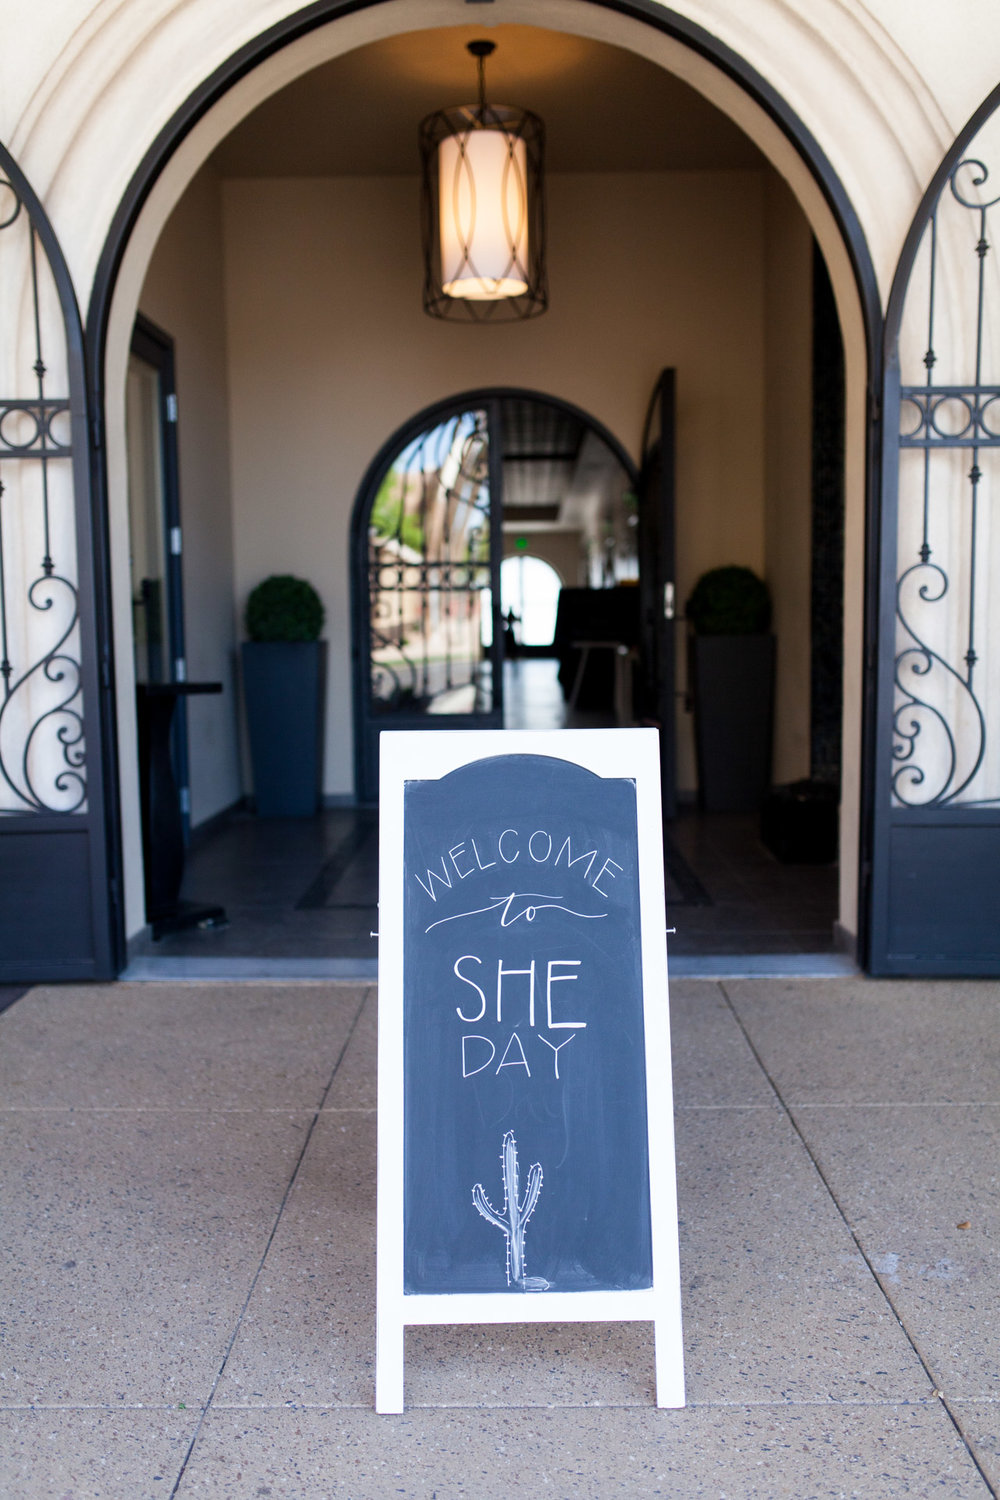 Custom chalkboard art for the event was provided by Etchings by Emma (@etchingsbyemma), a talented hand letterer located in Chandler, AZ. If you're having an event or shower, you'll love what she can create for you! PHOTO: @ERICAMCNICOLPHOTOGRAPHY